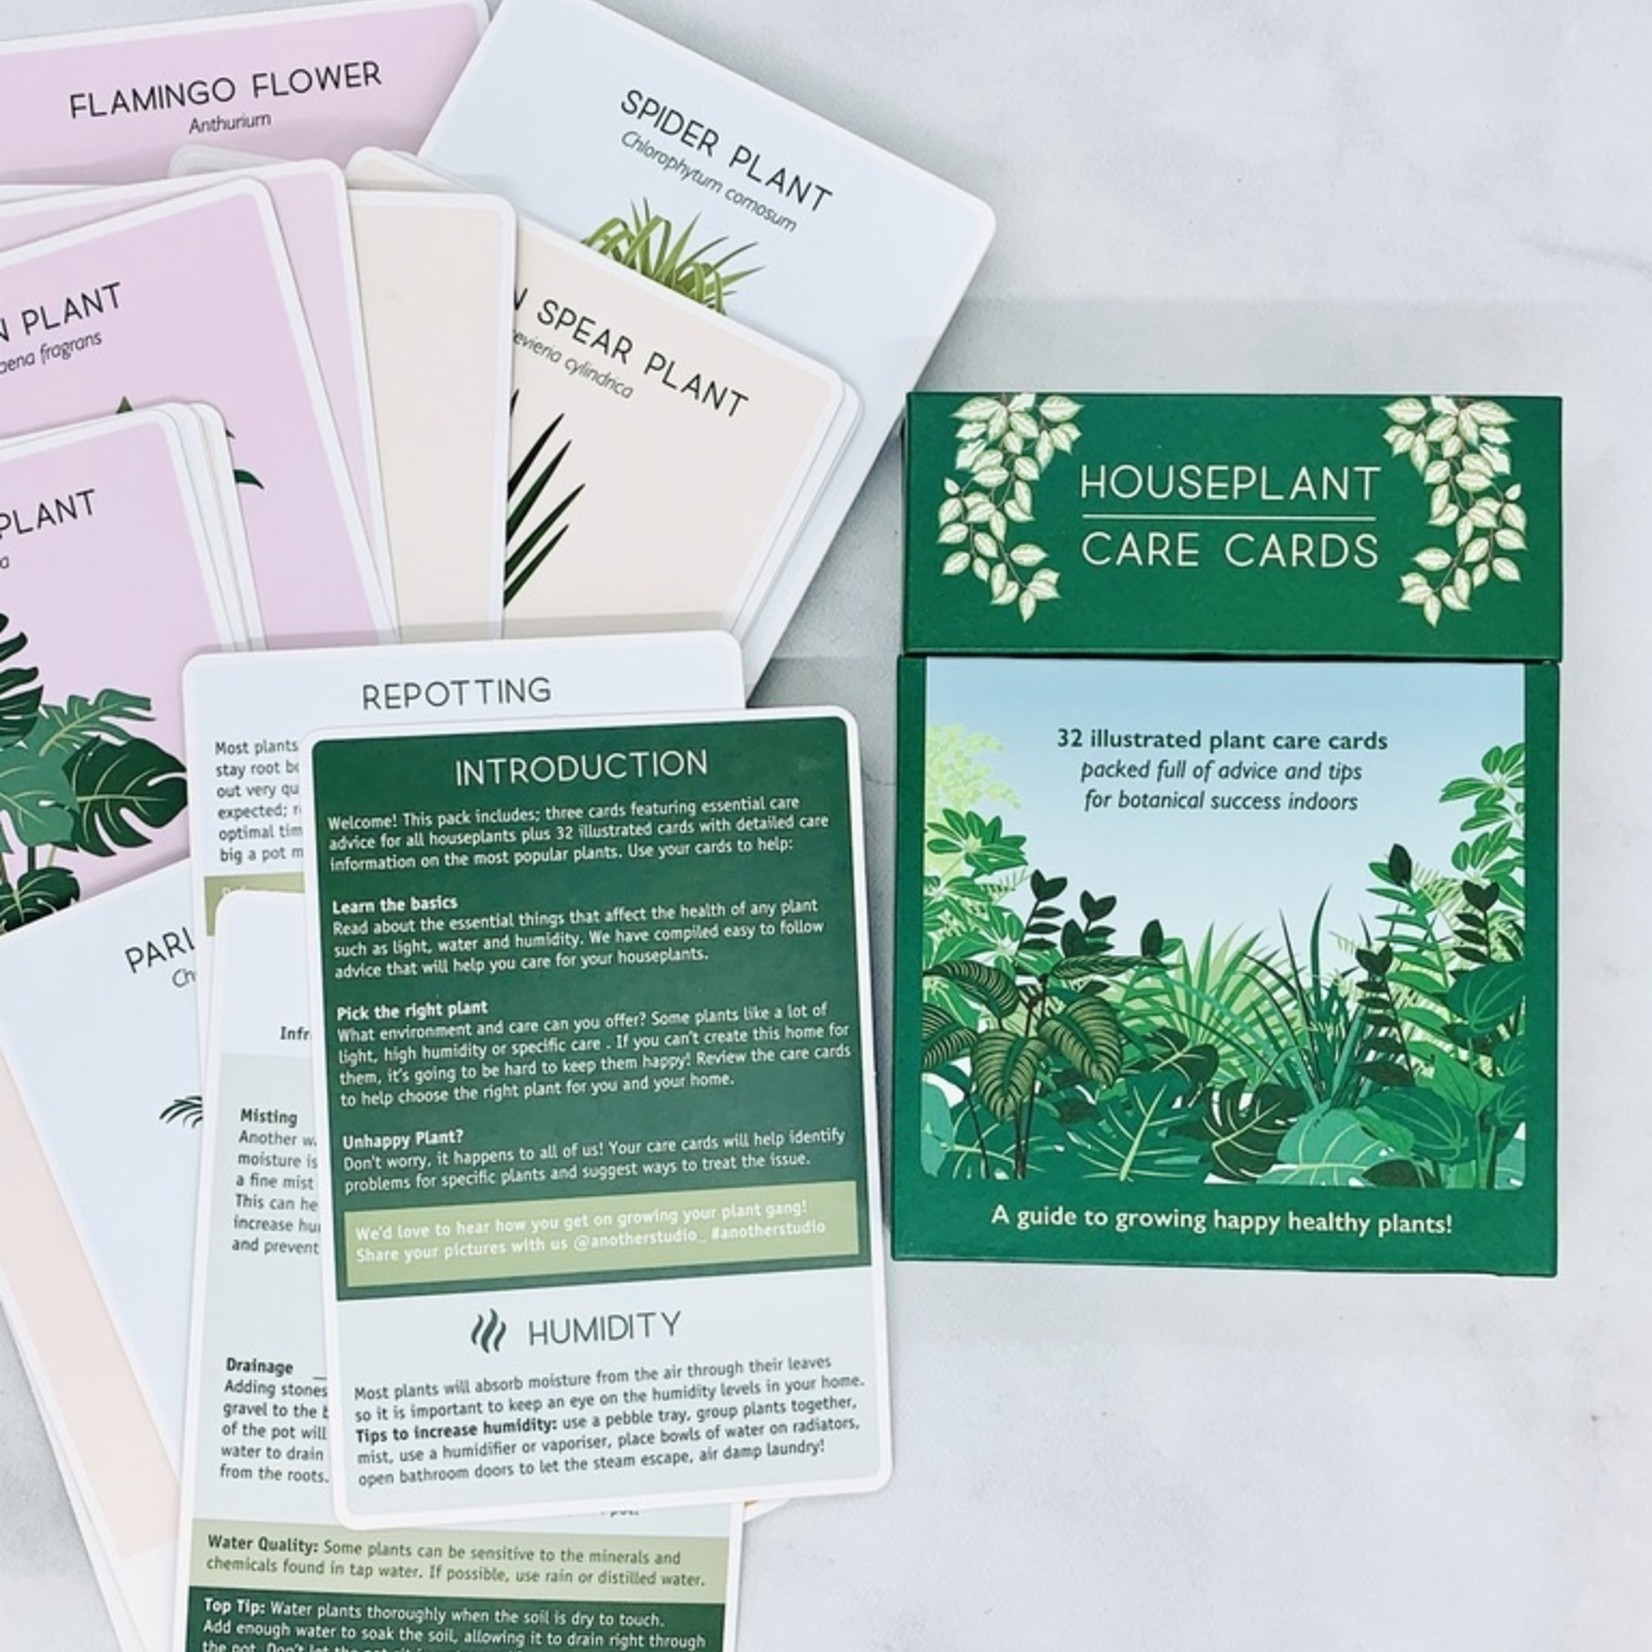 Another Studio for Design Plant Care Cards: